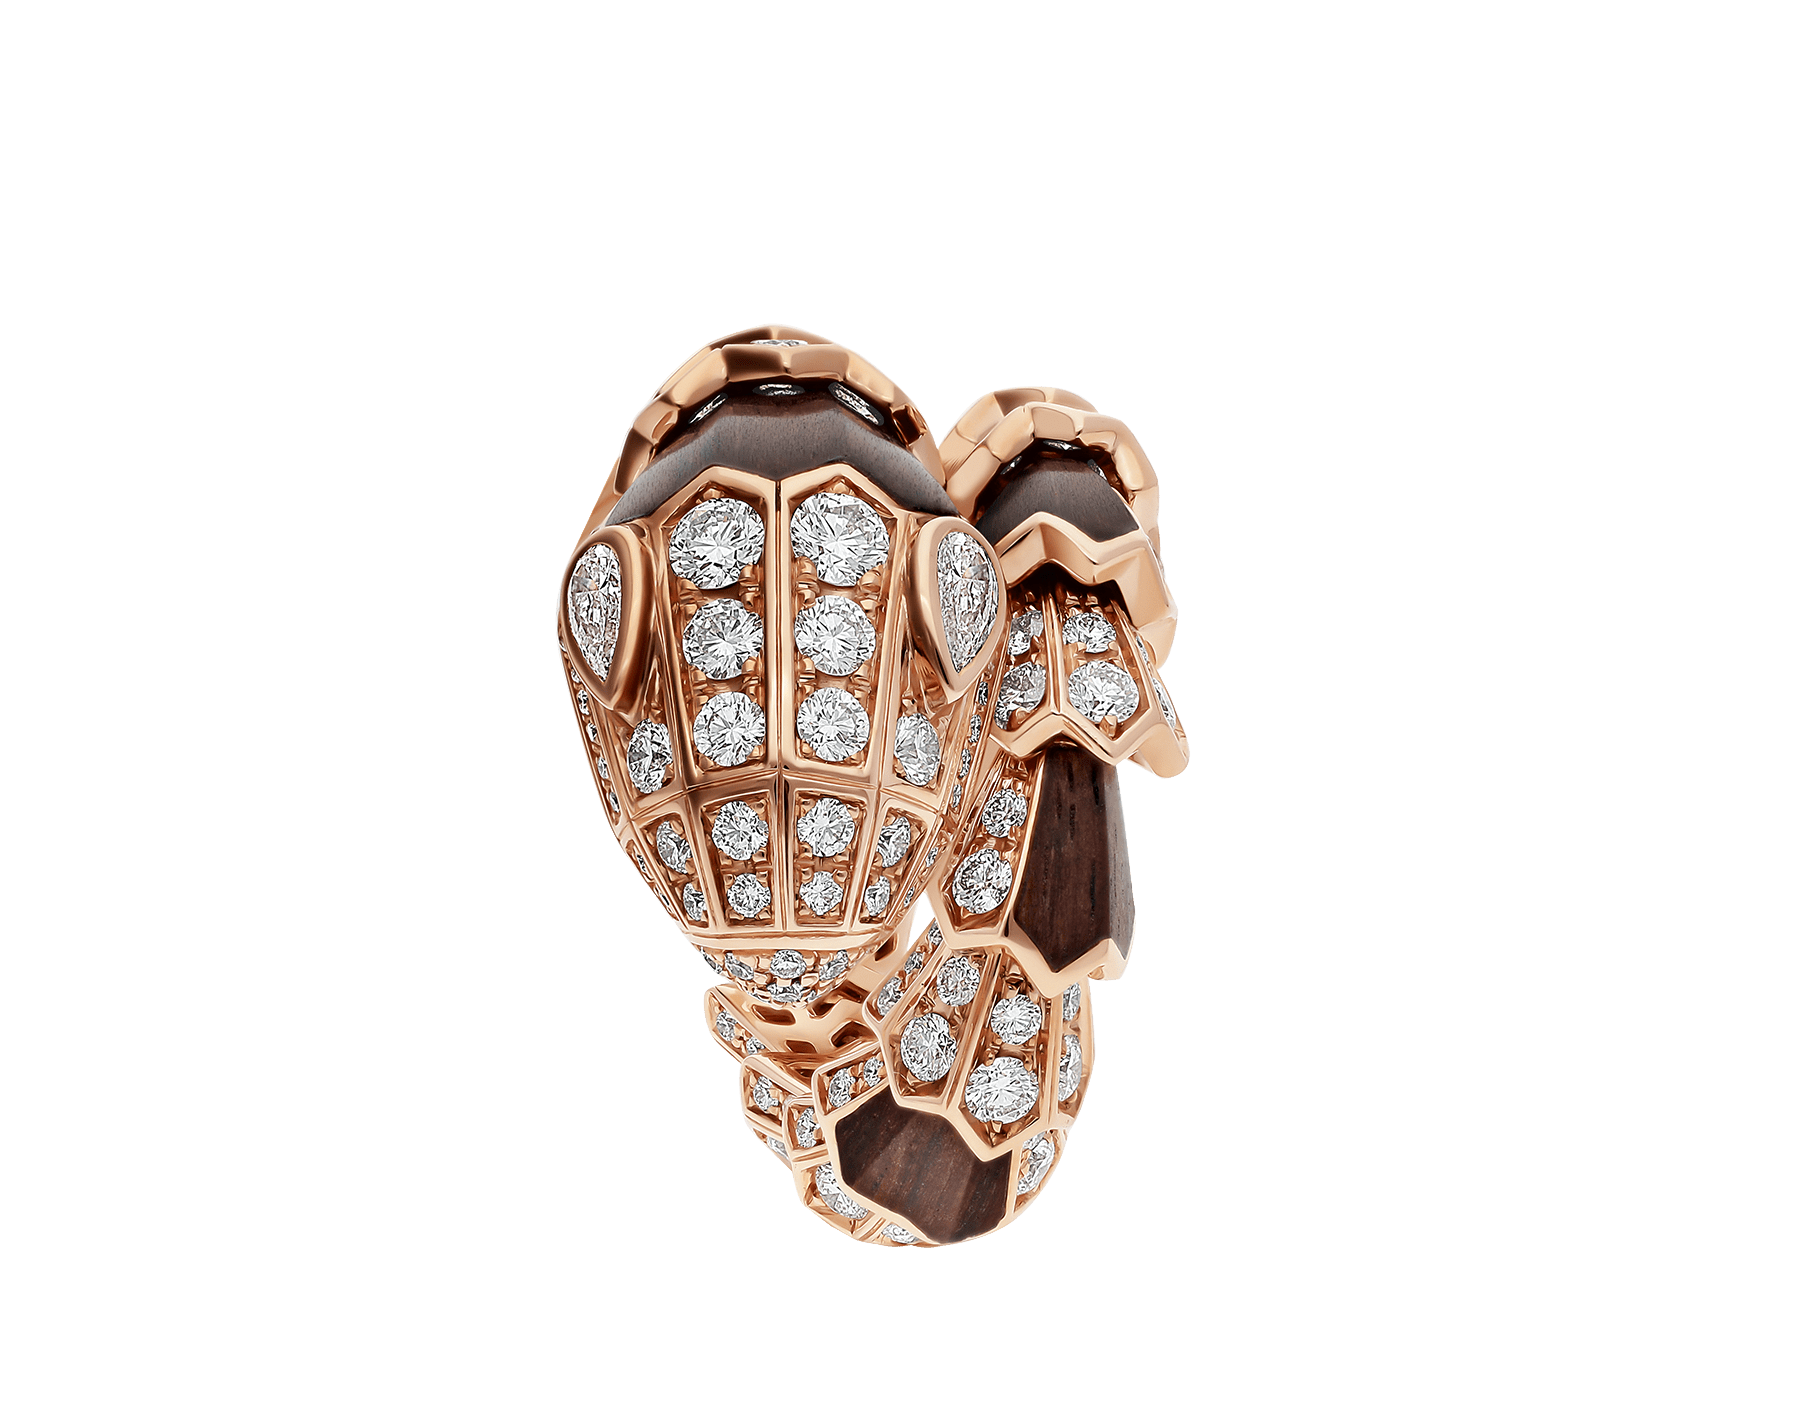 Serpenti ring in 18 kt rose gold, set with wood elements and pavé diamonds. AN857756 image 2